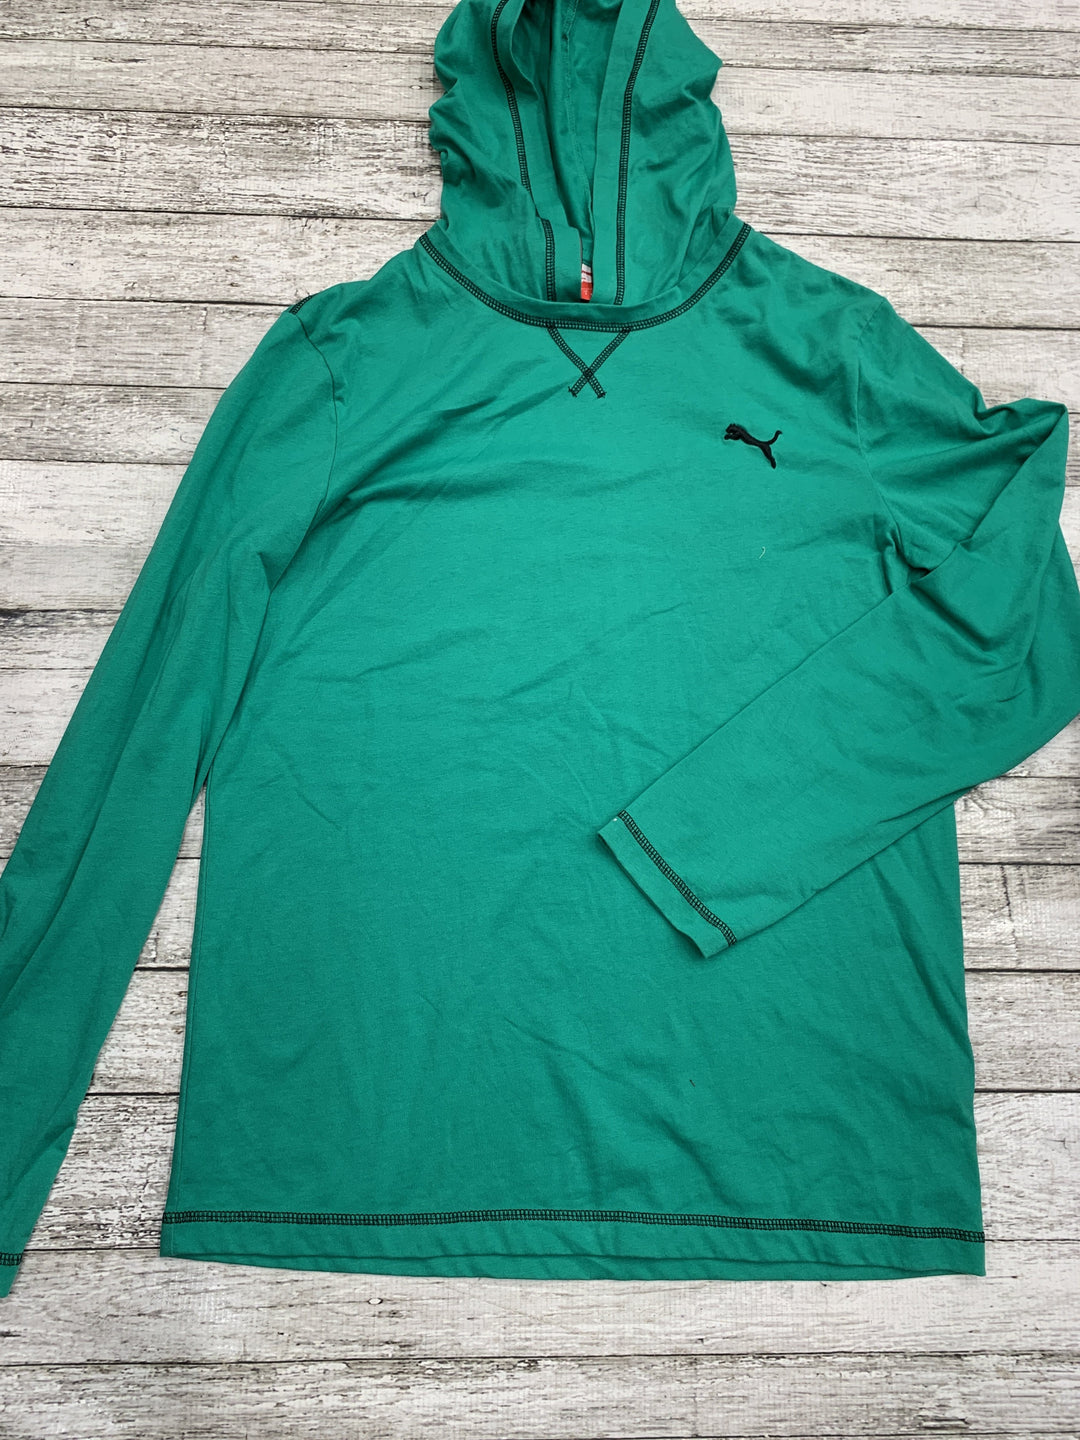 Primary Photo - brand: puma , style: athletic top , color: green , size: s , sku: 126-1881-62037